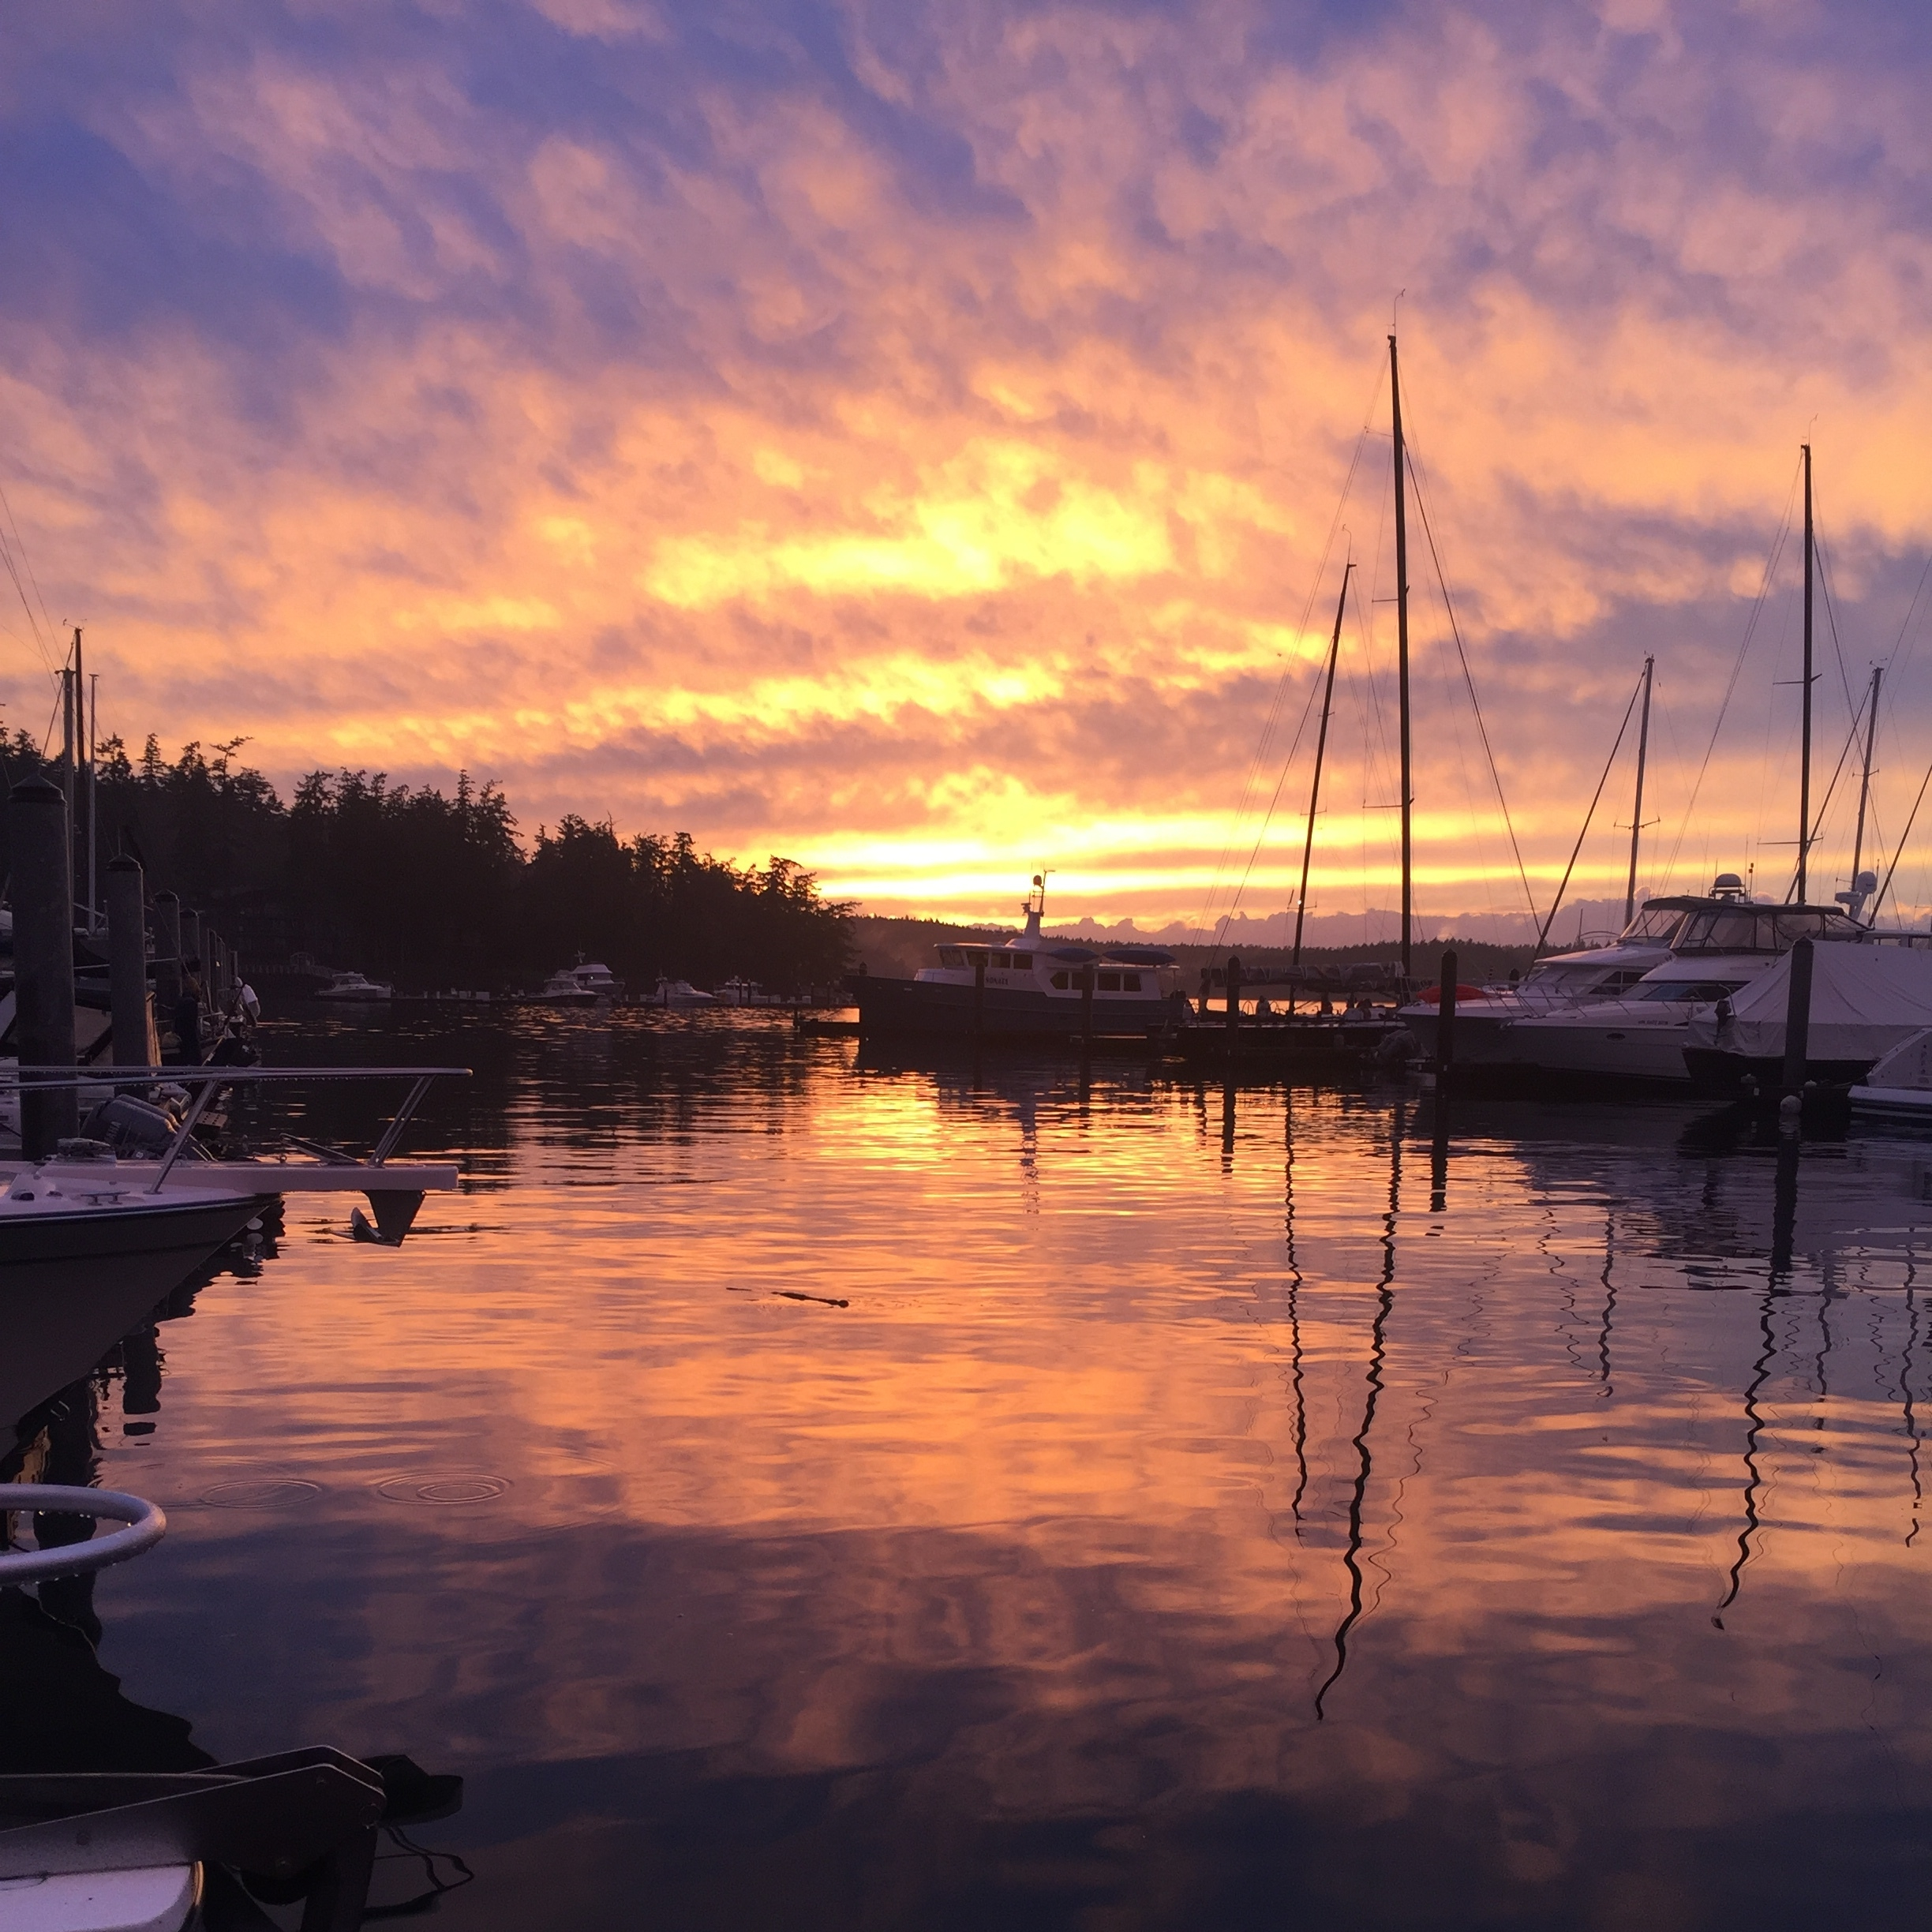 """Sunset at Roche Harbor on San Juan Island after Day 1 of racing """"Round The County"""" on a J111, November 2016"""